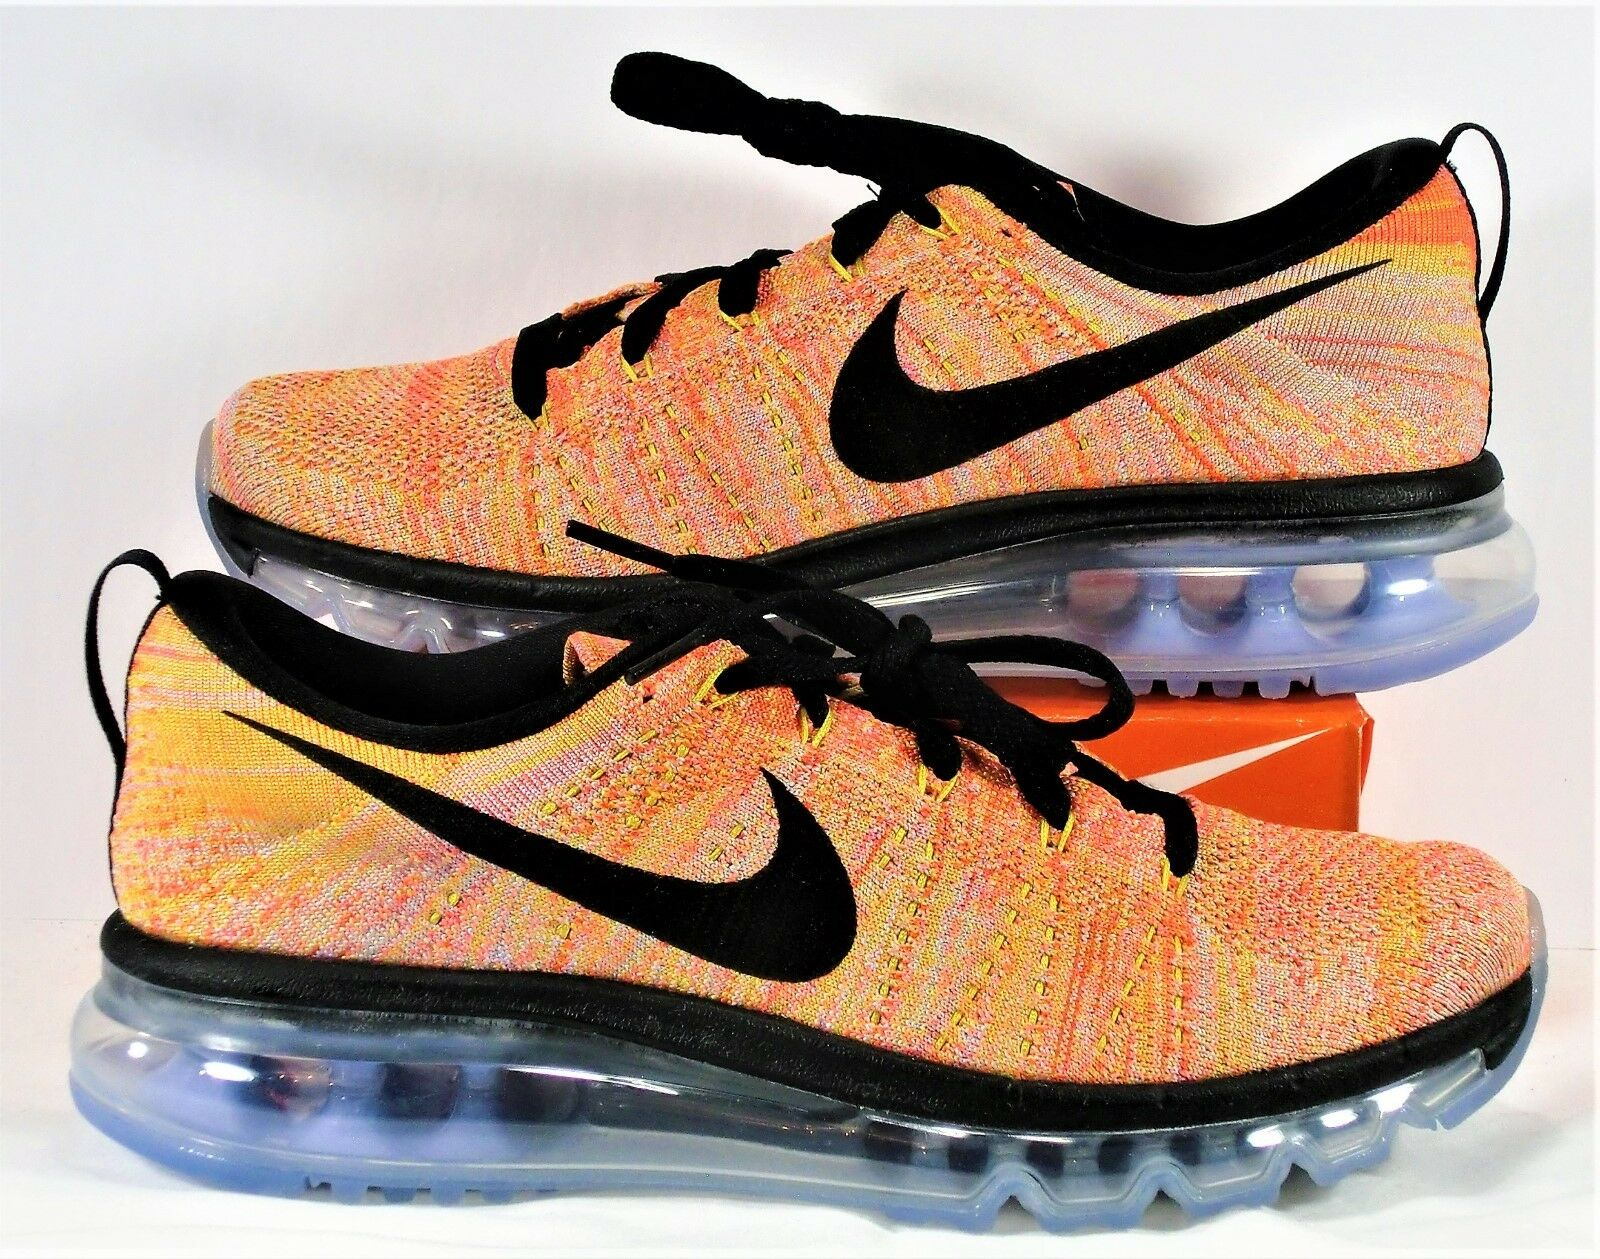 Nike Air Flyknit Max Black & Hot Punch Running Shoes Sz 7.5 NEW 620659 406 best-selling model of the brand